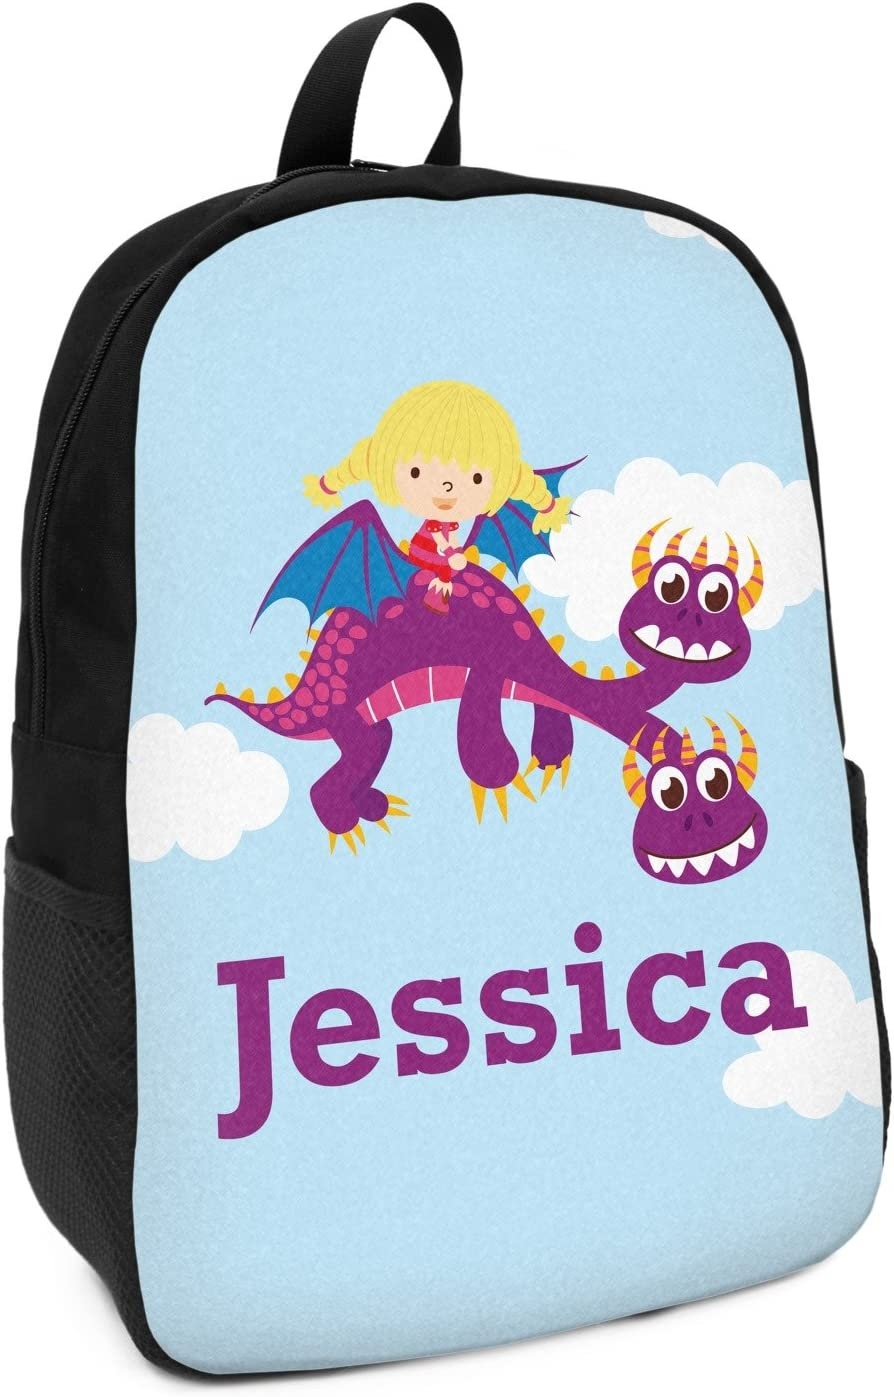 Girl Flying on a Dragon Kids Backpack Personalized